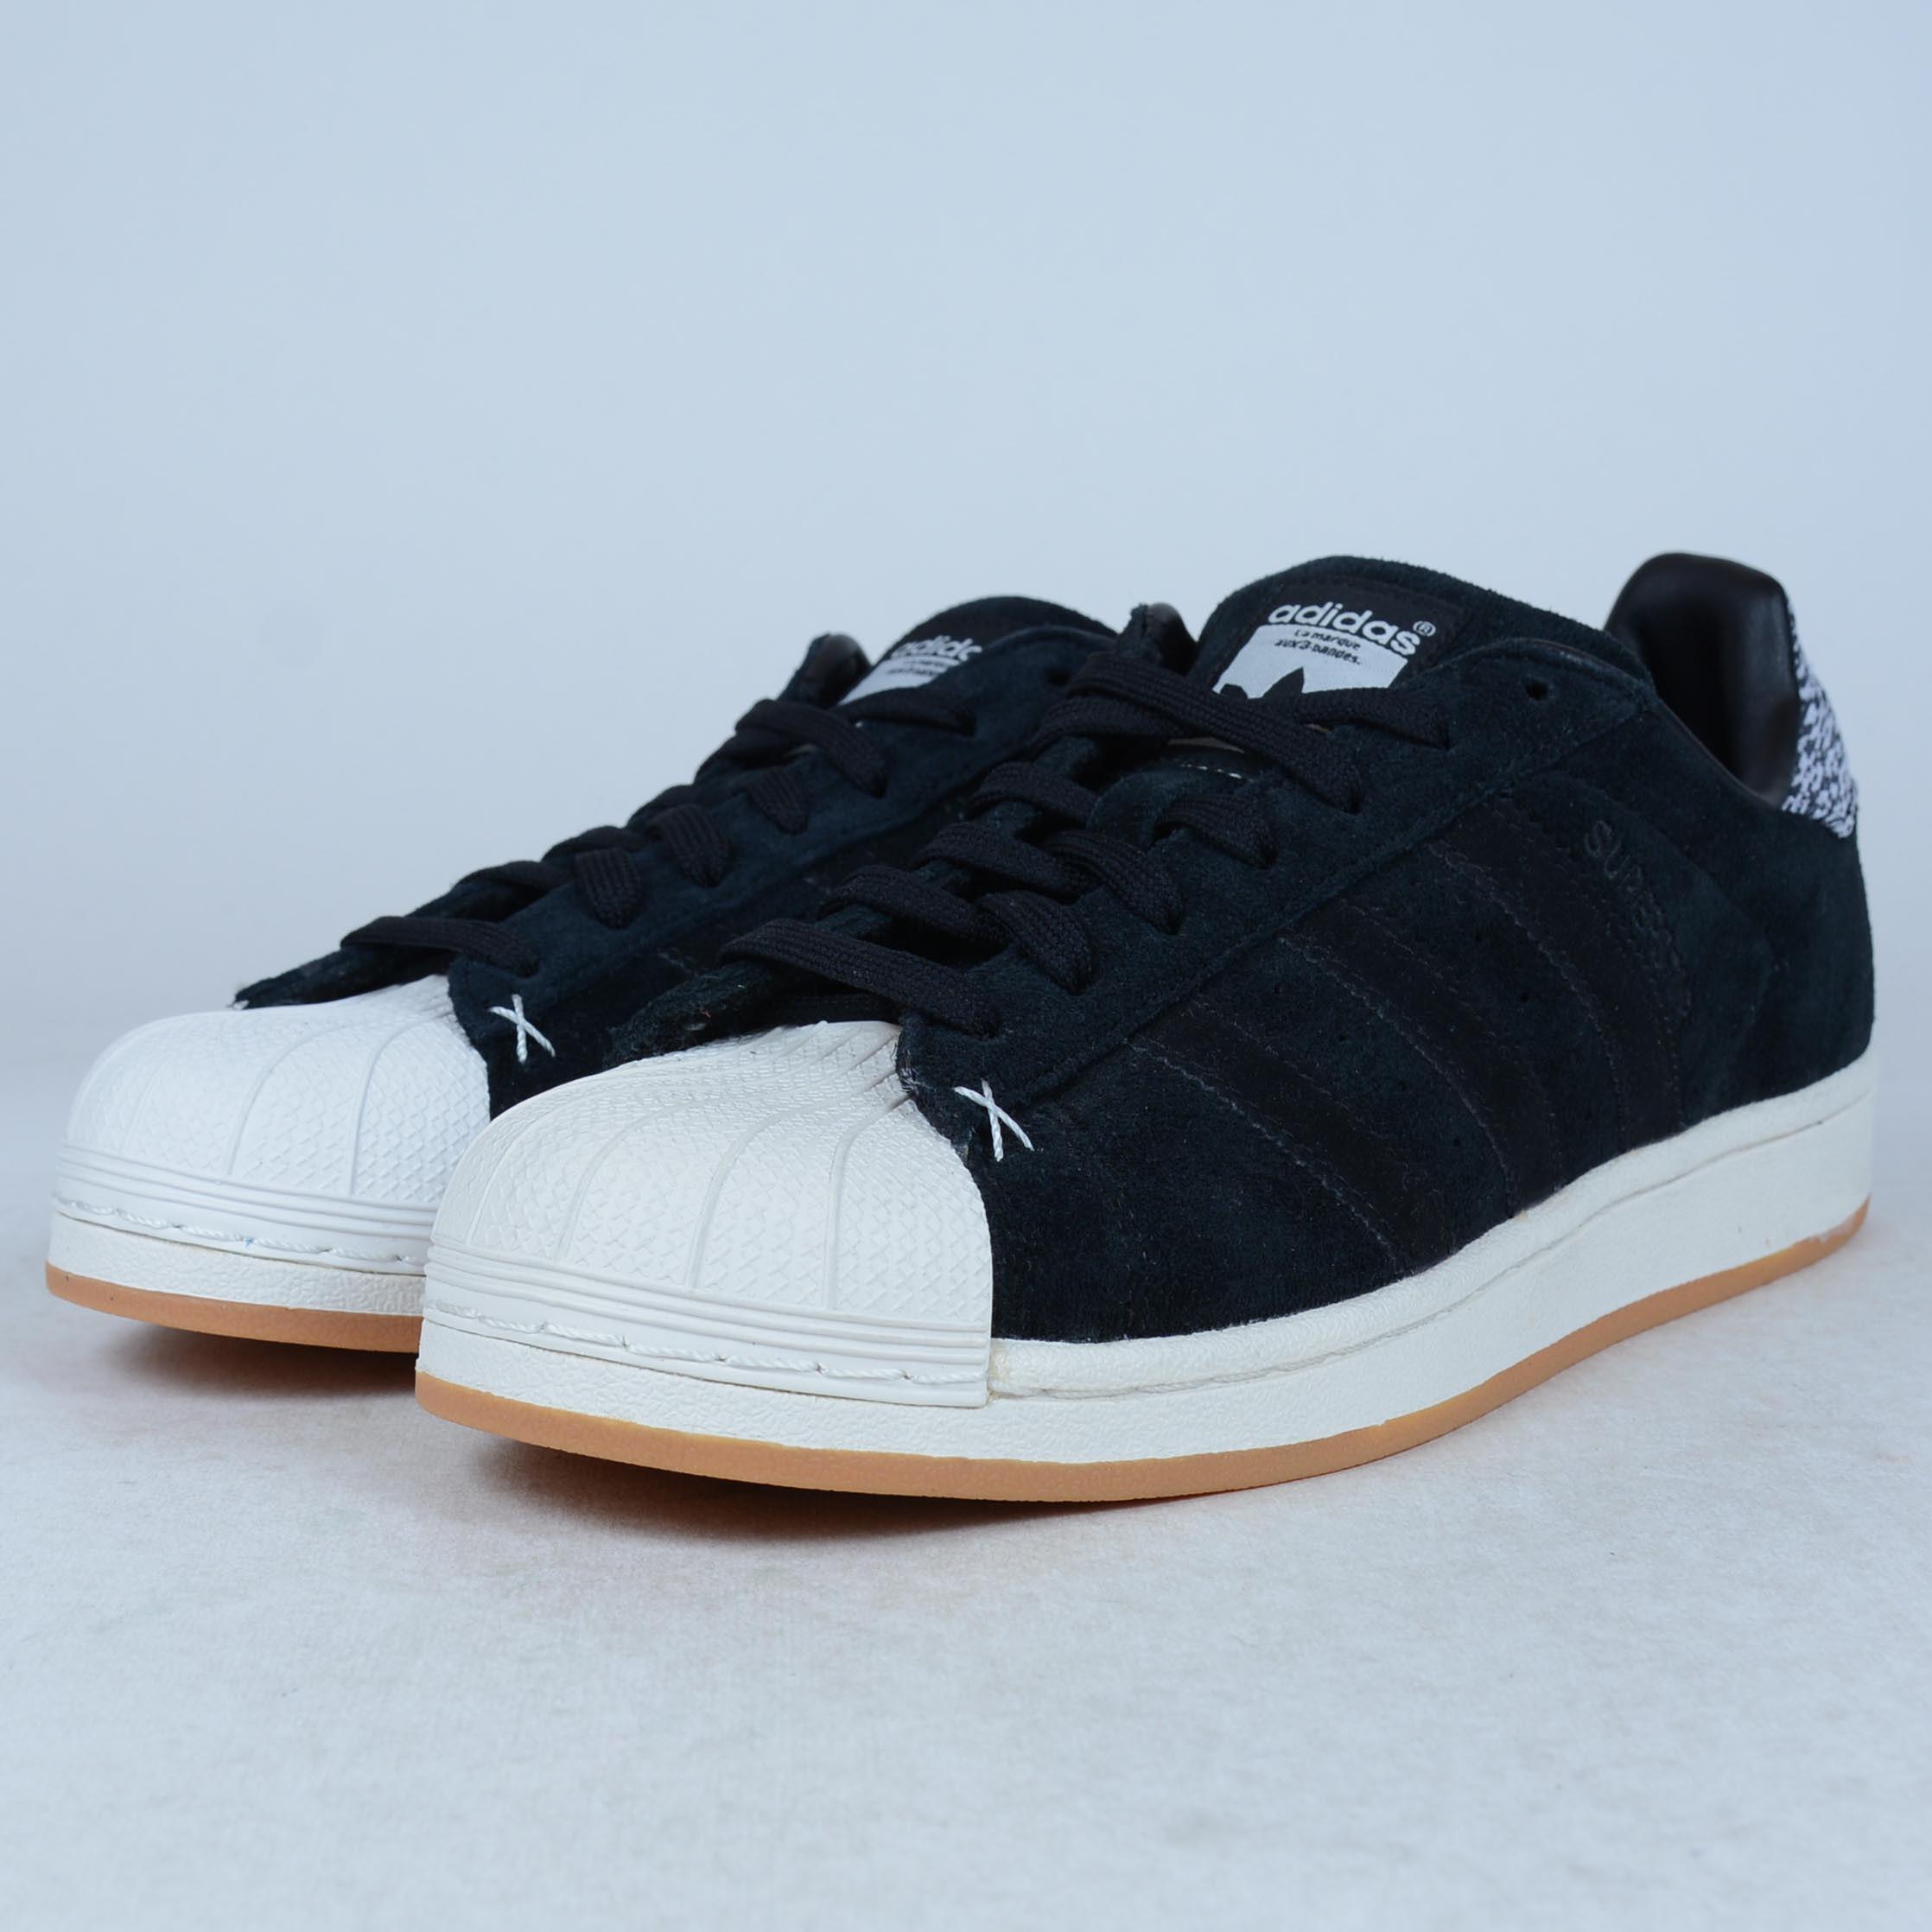 hot sales b33e3 657f5 switzerland adidas superstar black white shell toe dbc02 6d65b